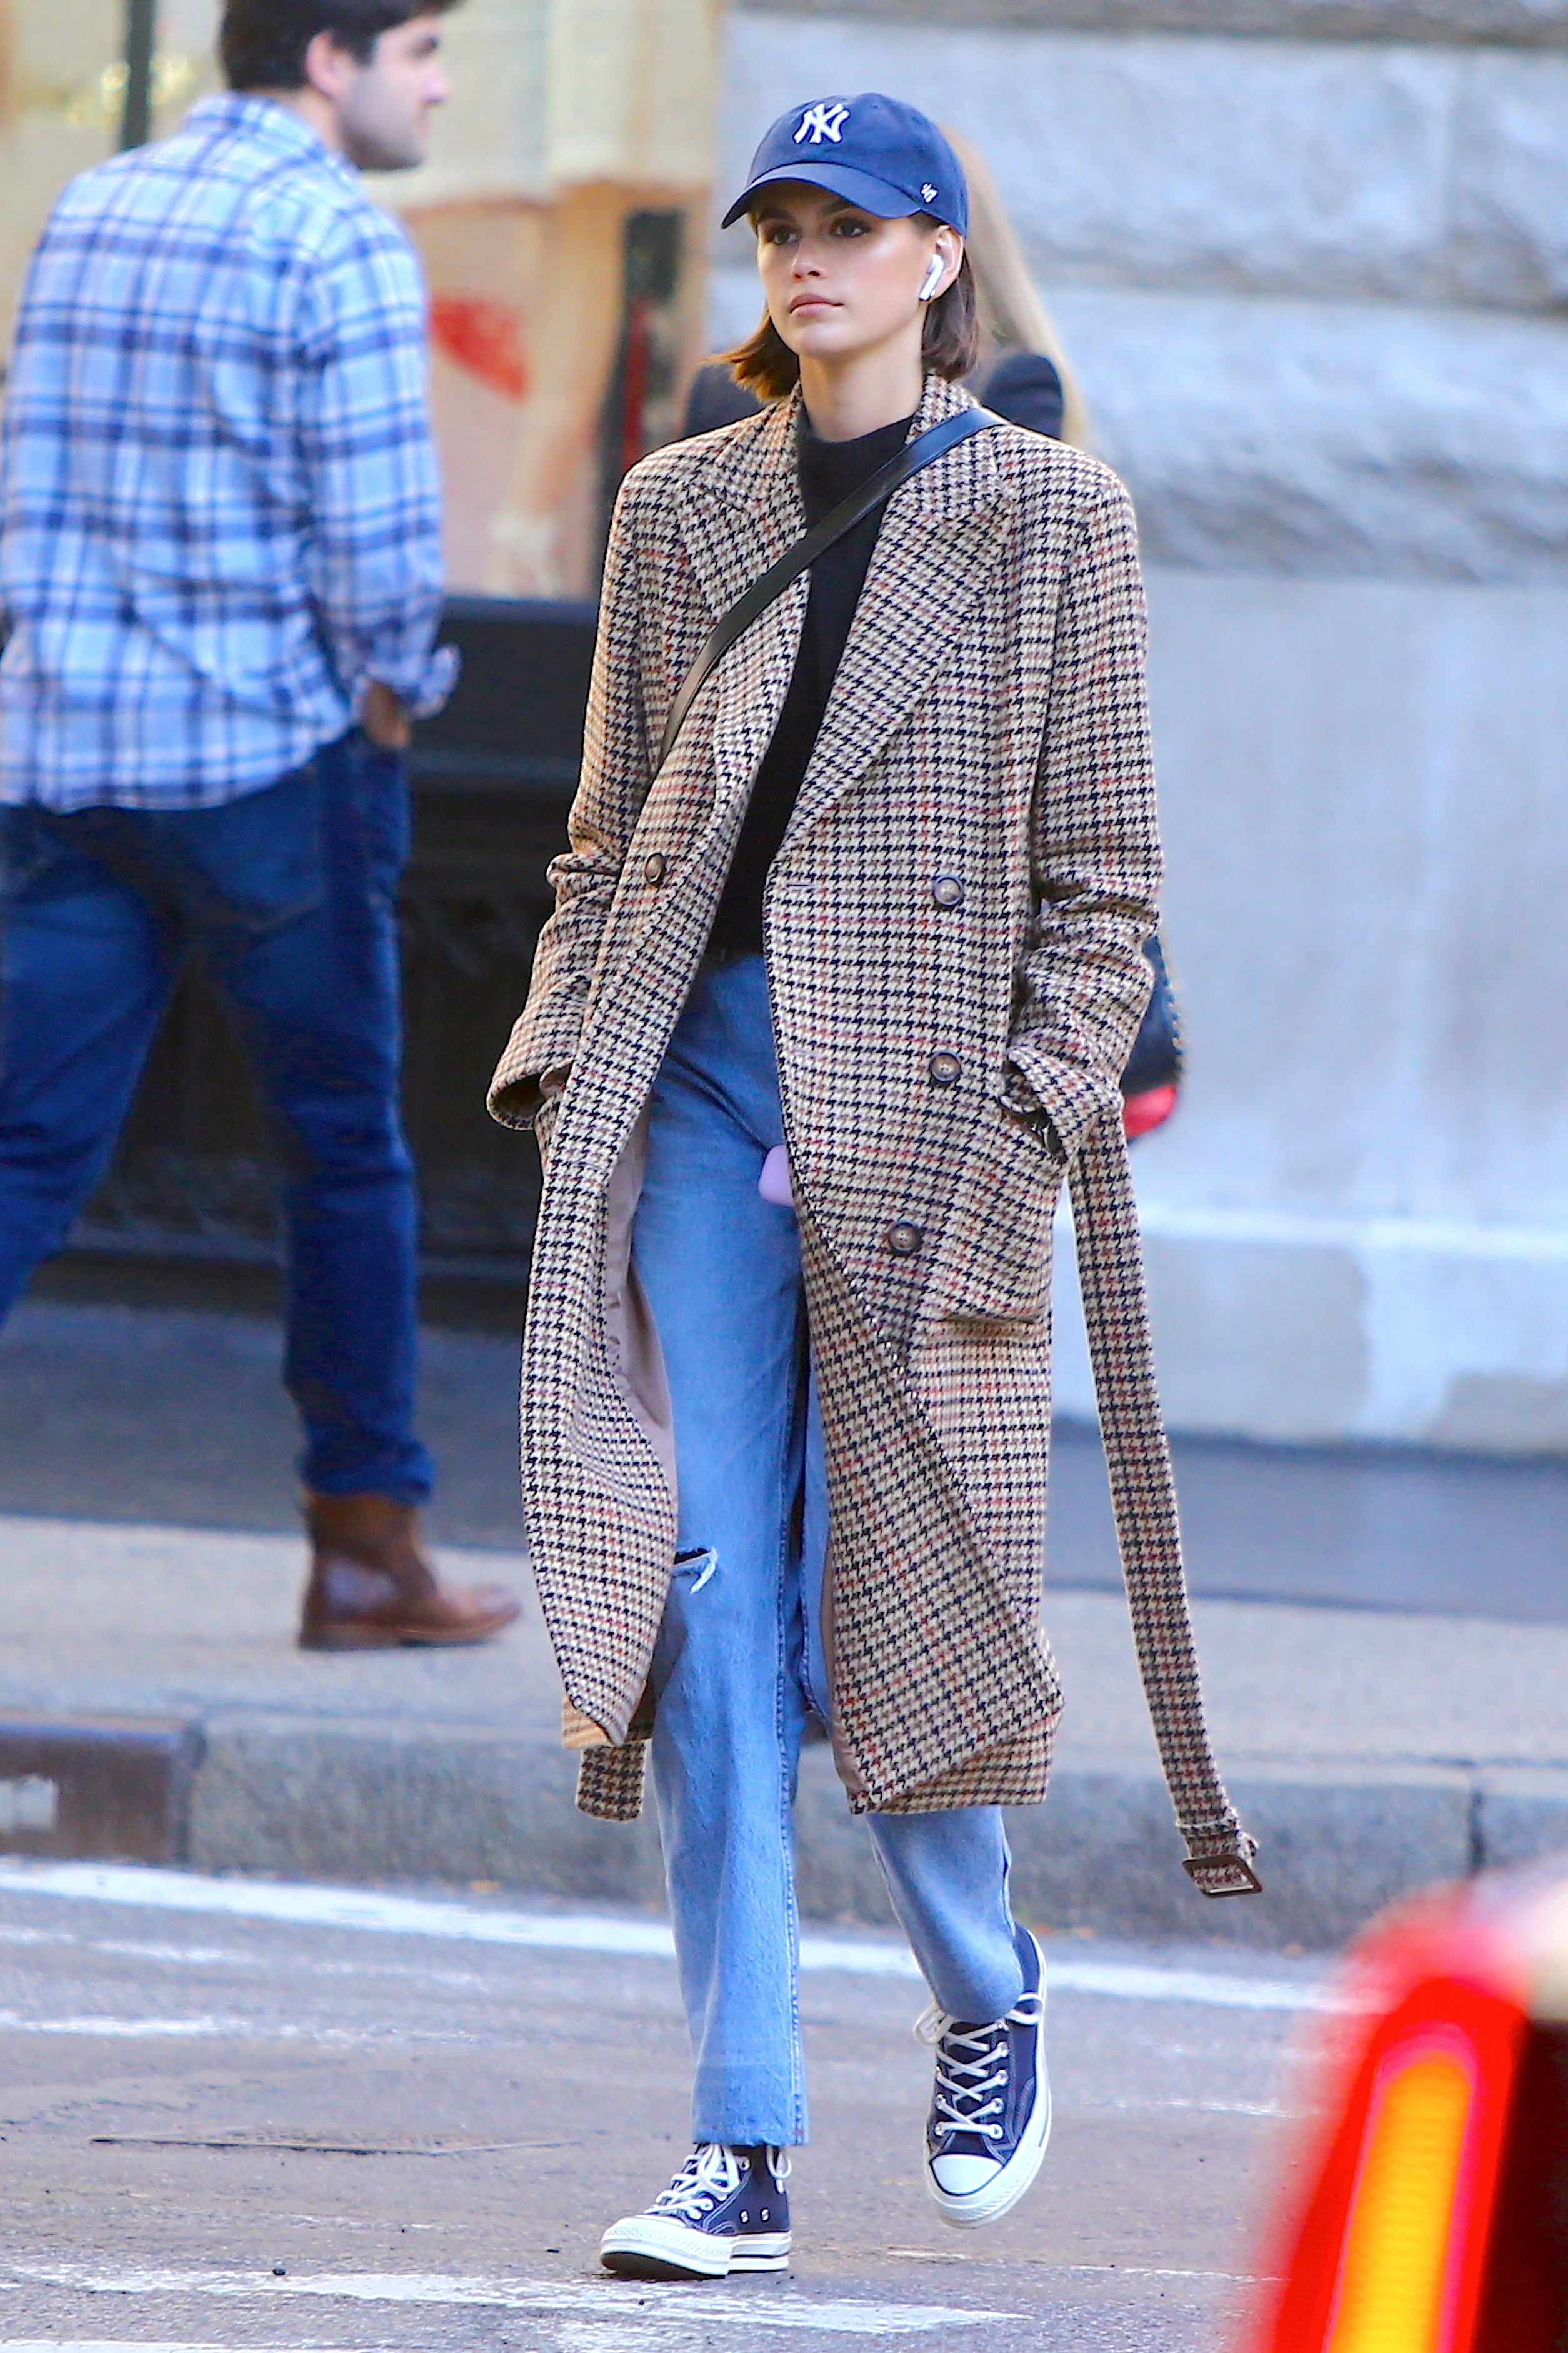 coat kaia gerber model off-duty streetstyle fall outfits casual